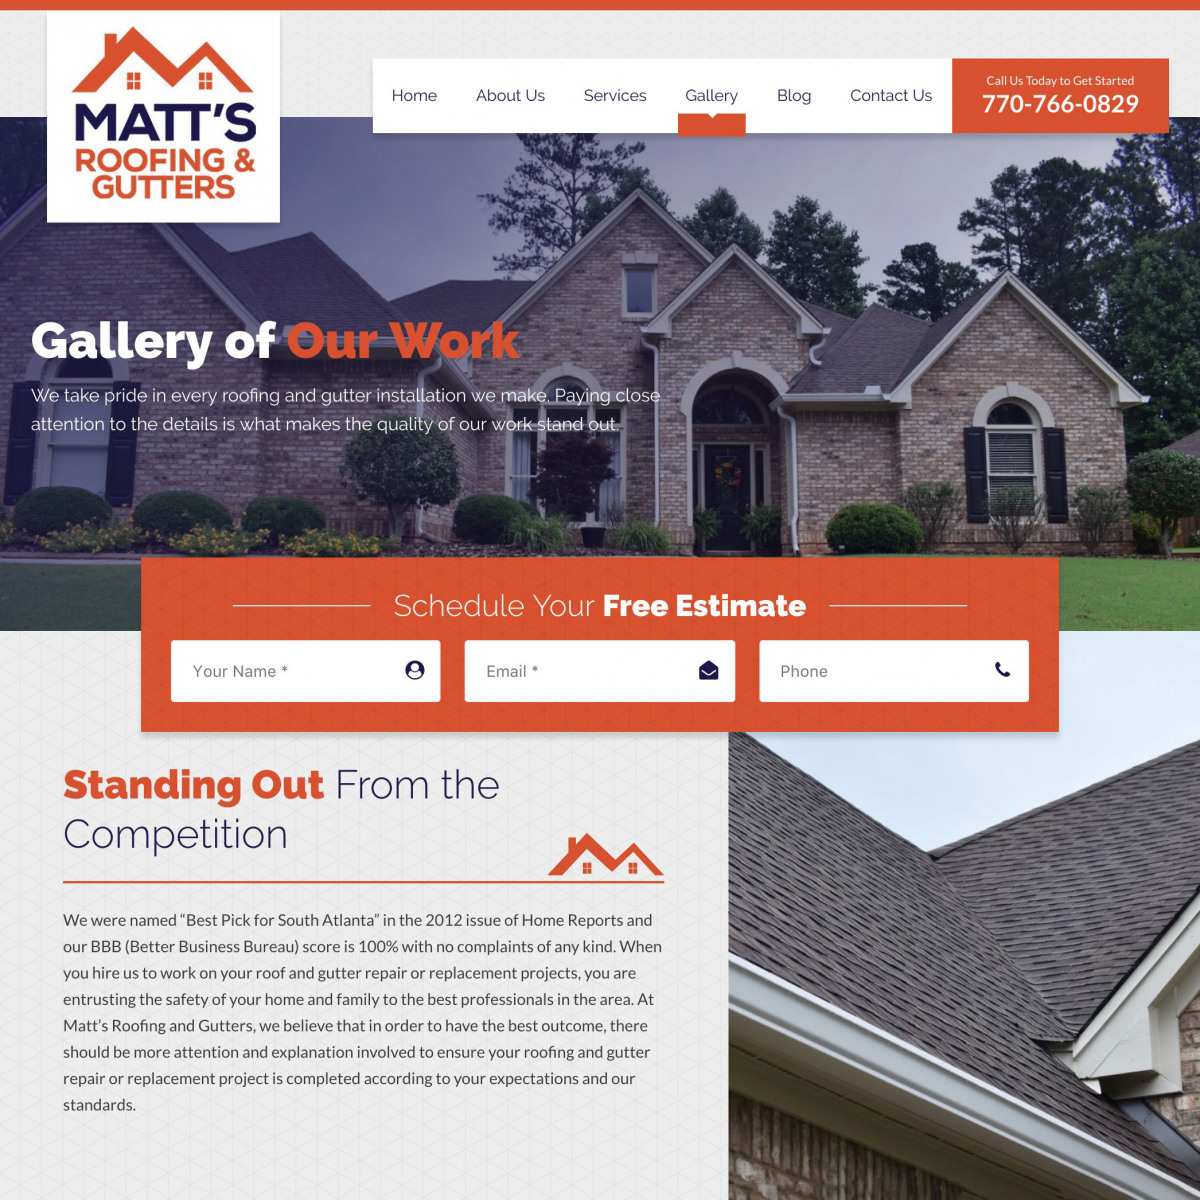 Image of website for Matt's Roofing & Gutters